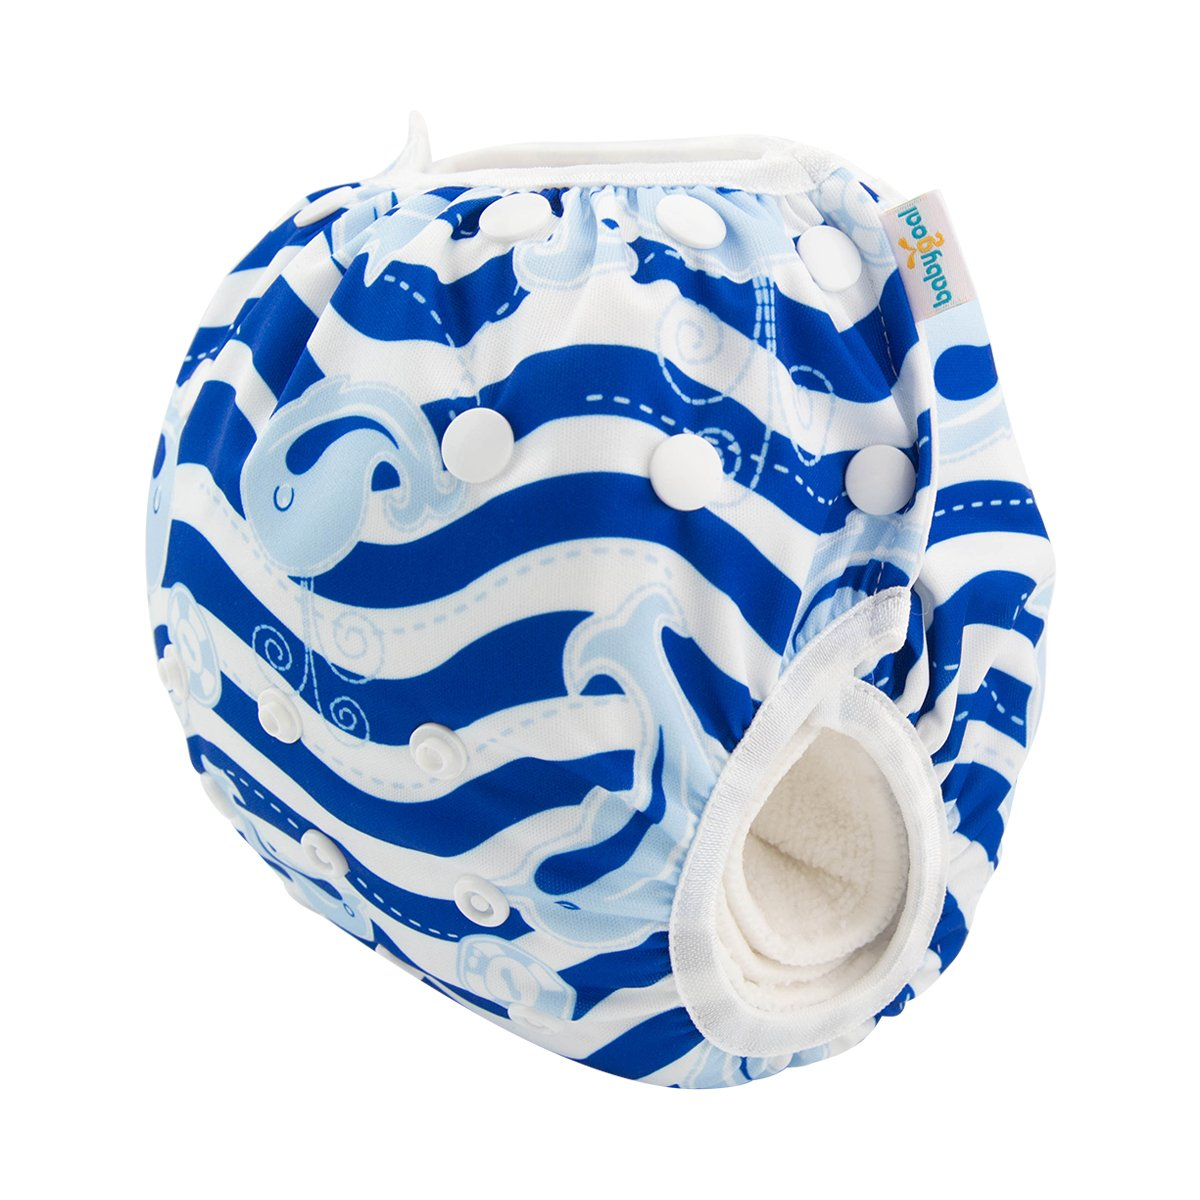 ZFSW05-B Rose Large Size Washable and Adjustable for Swimming Fit Babies 0-3 Years babygoal Baby Reusable Swim Diapers